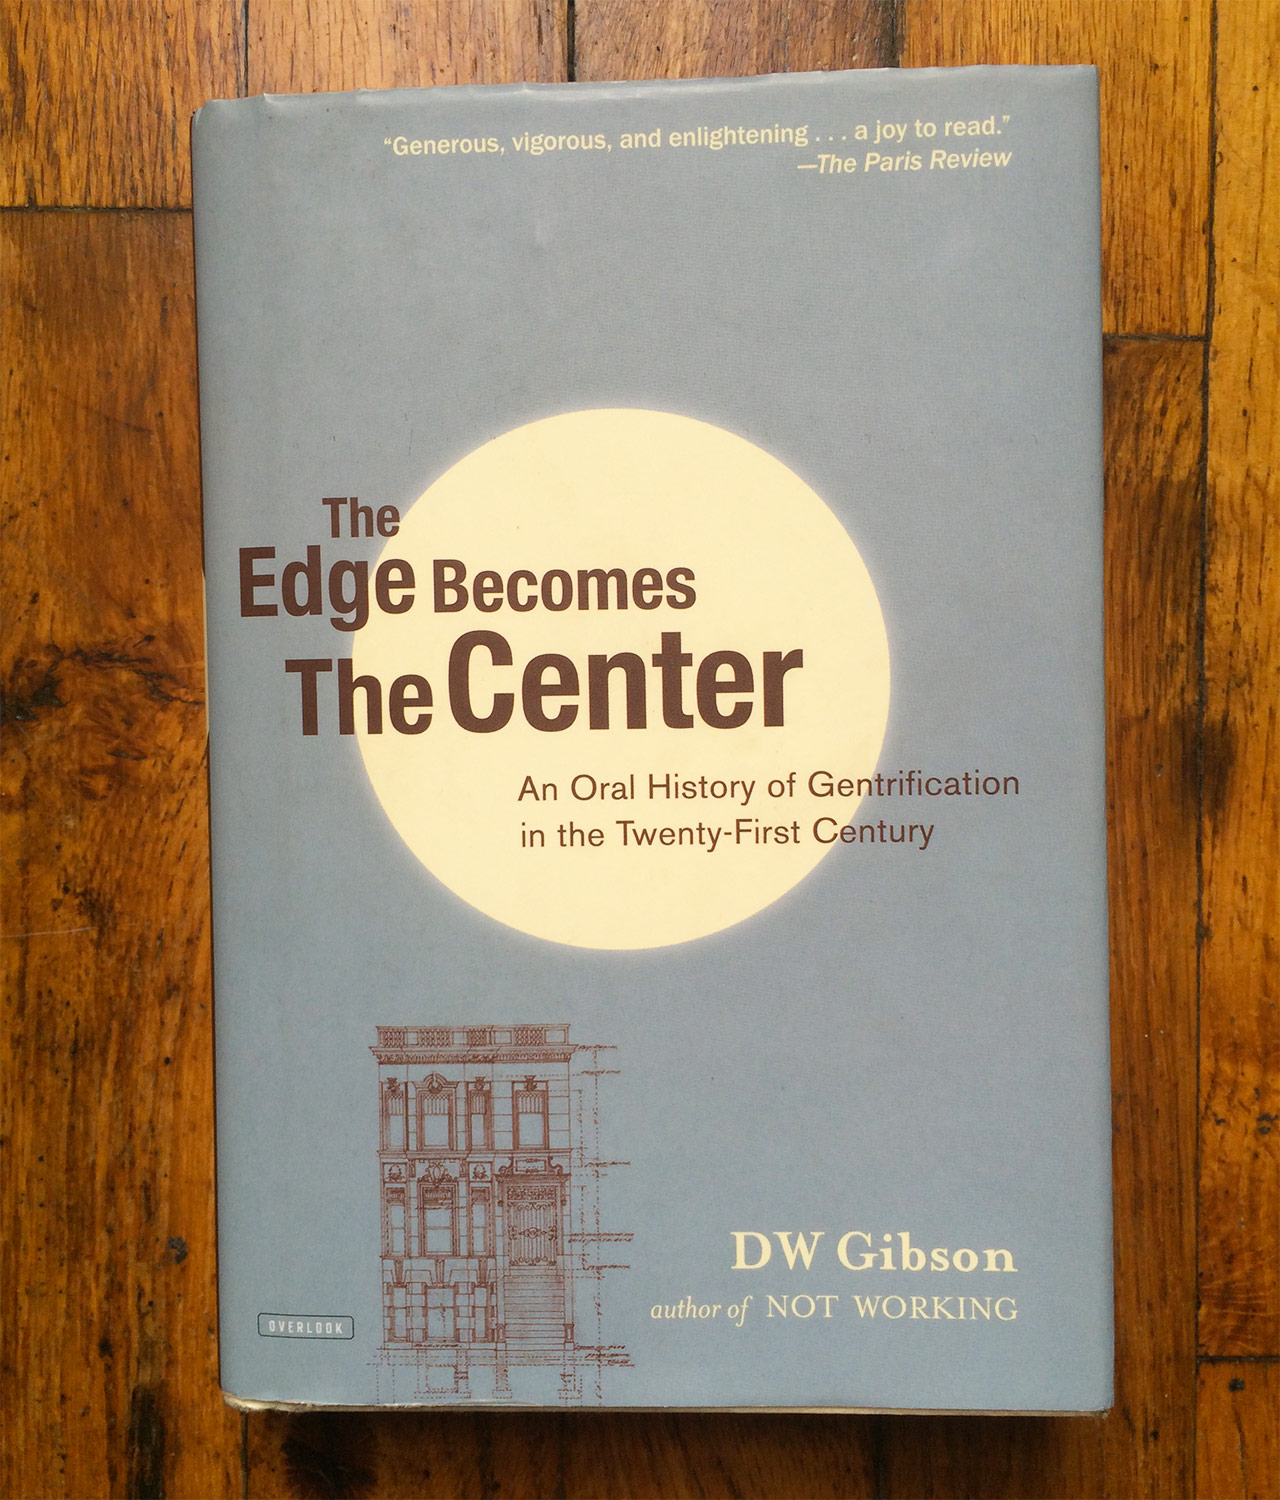 The cover of DW Gibson's 'The Edge Becomes the Center: An Oral History of Gentrification in the 21st Century' (photo by the author)